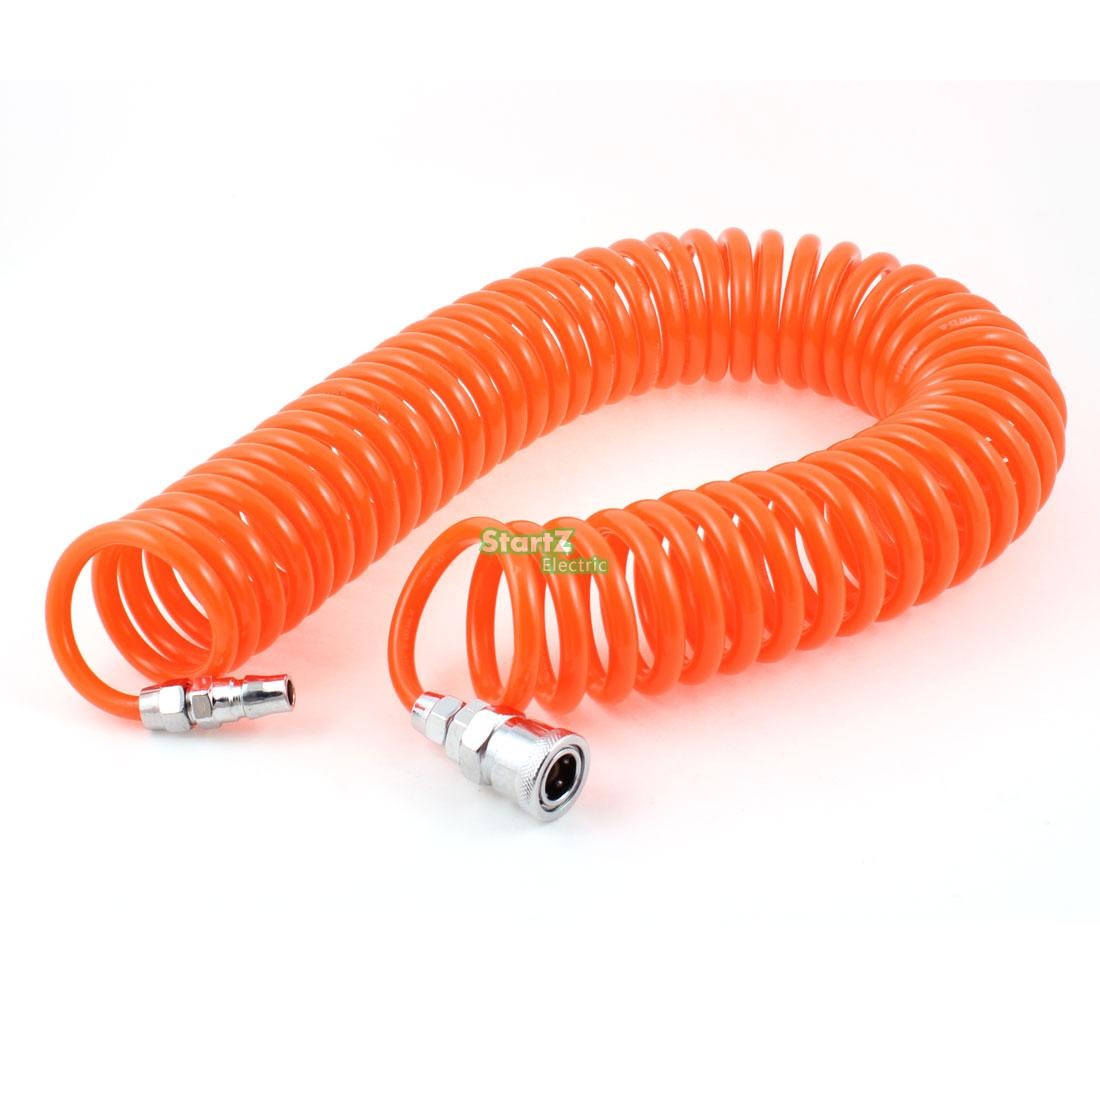 15M 49 Ft 8mm x 5mm Polyurethane PU Recoil Air Compressor Hose Tube Orange Red 12m 39 ft 8 x 5mm flexible pu recoil pipe hose for air compressor free shipping